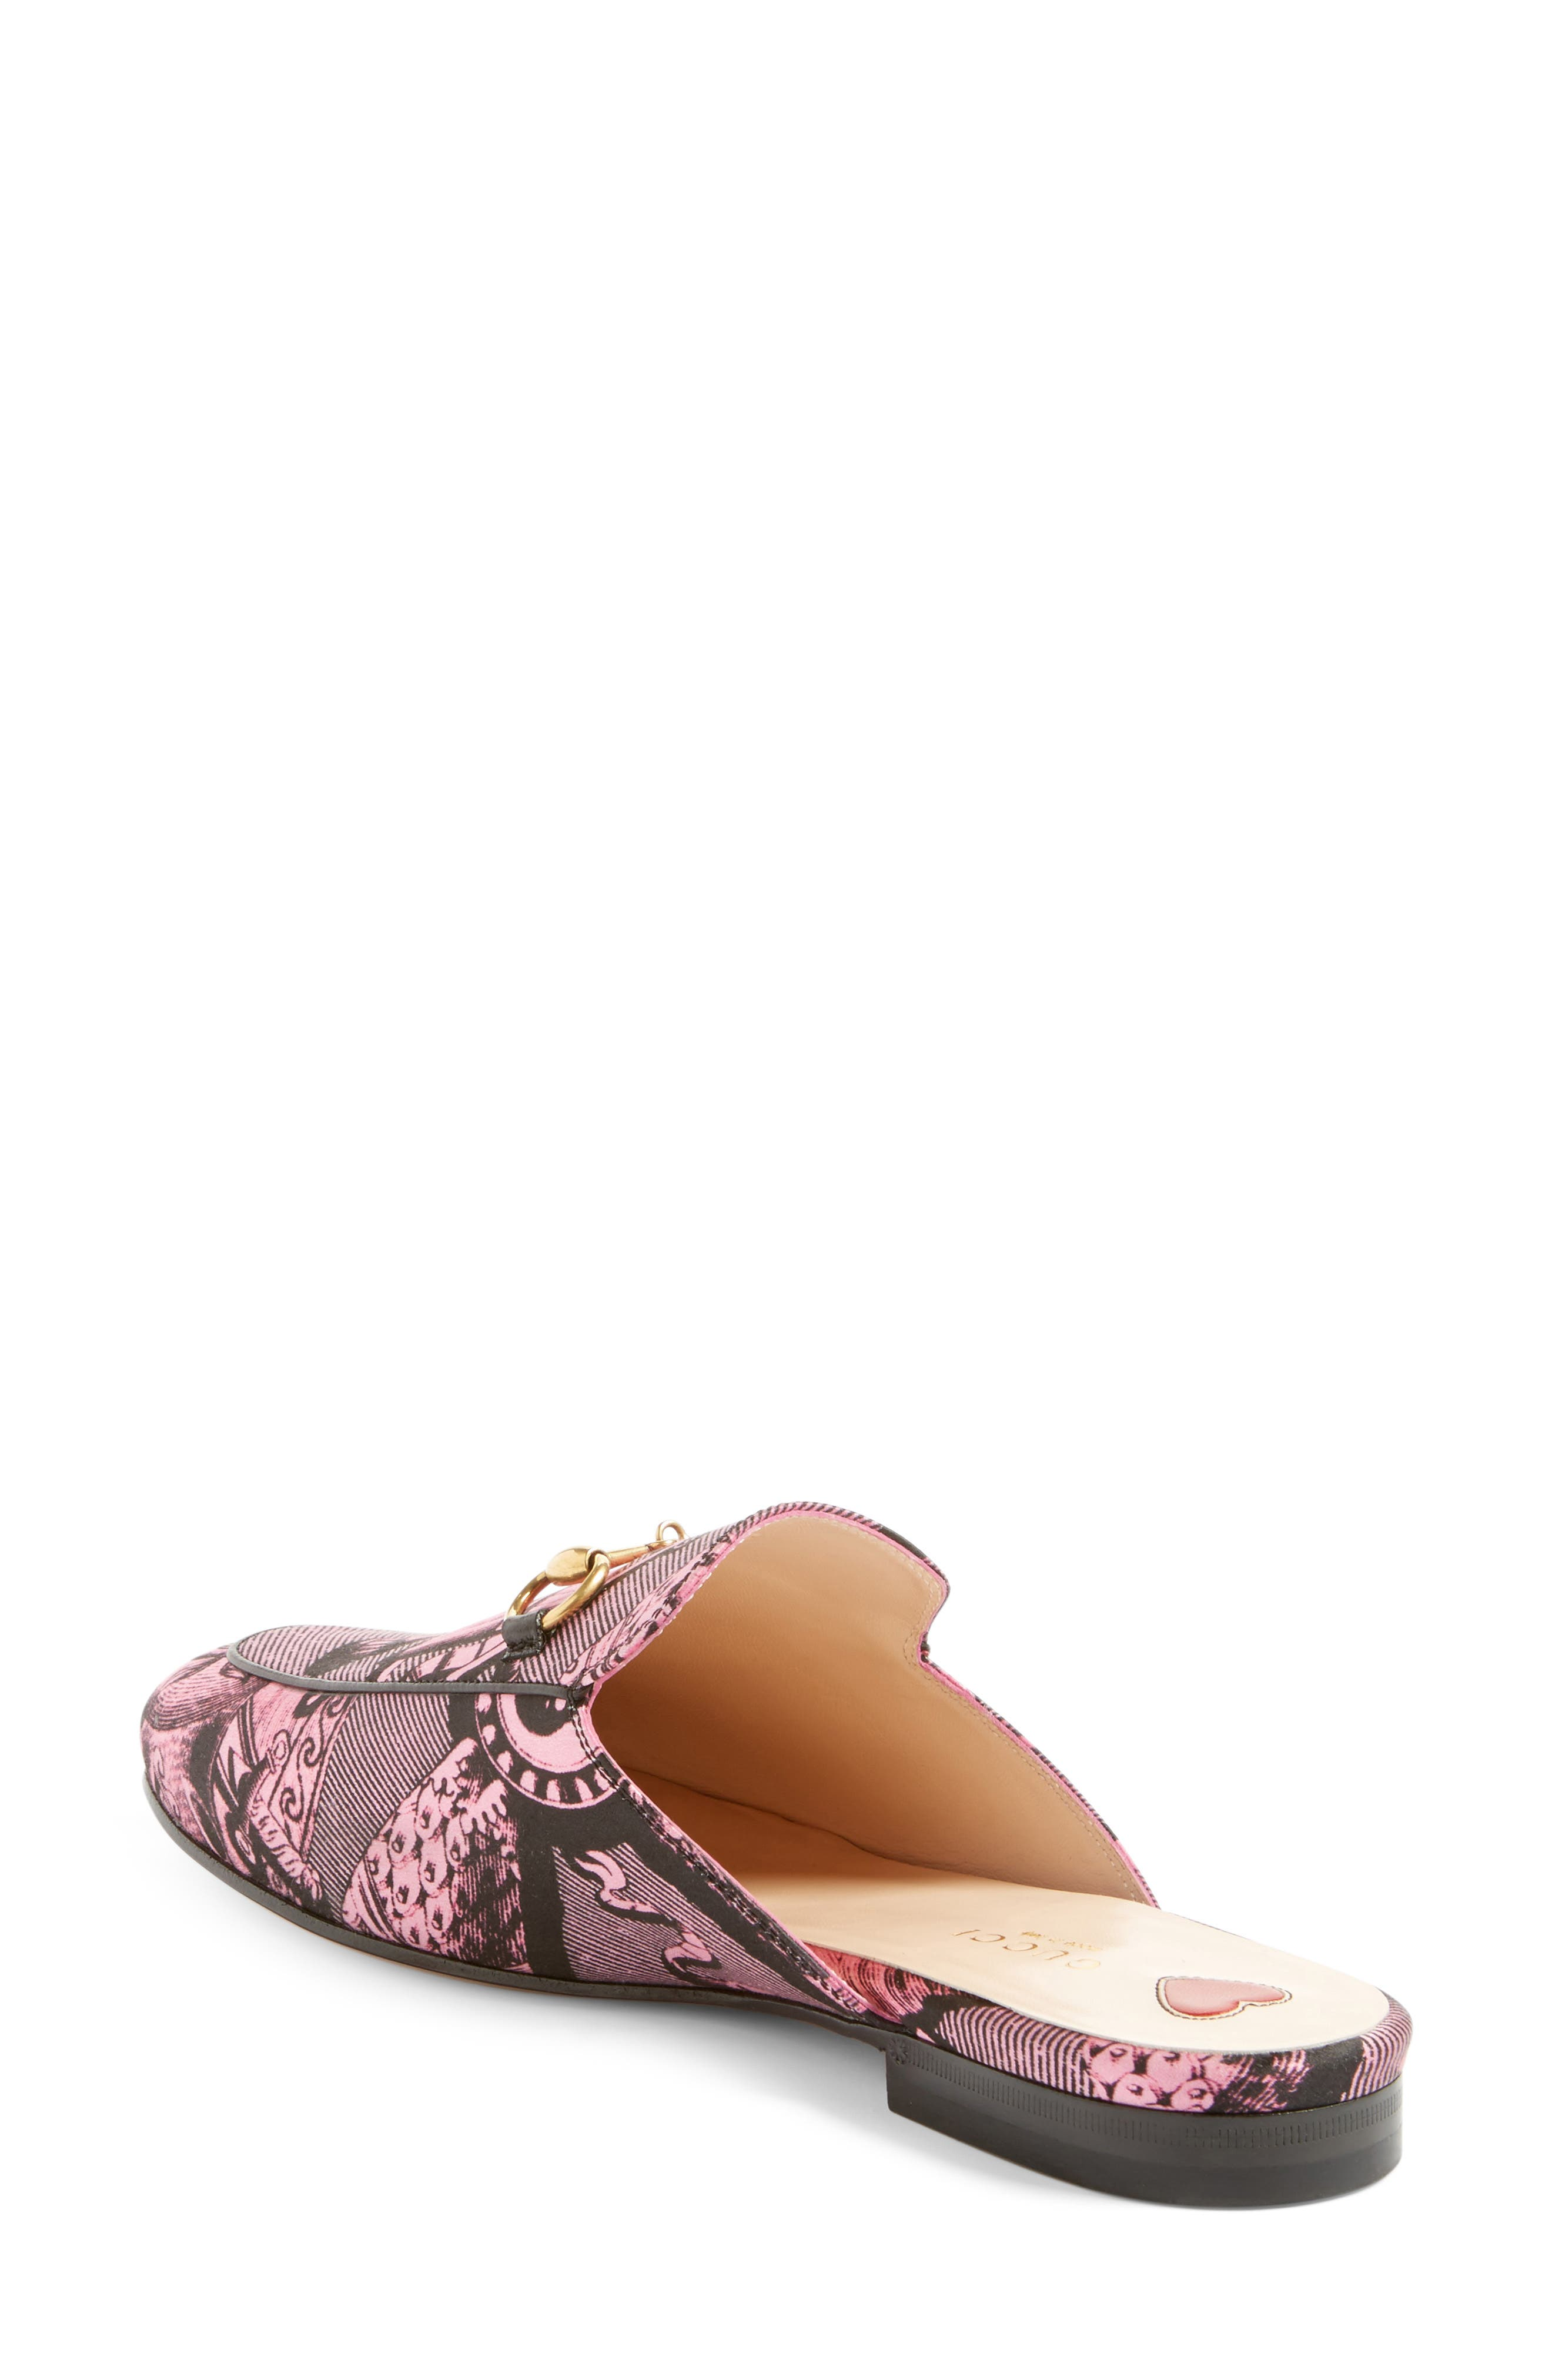 Princetown Loafer Mule,                             Alternate thumbnail 2, color,                             Pink Multi